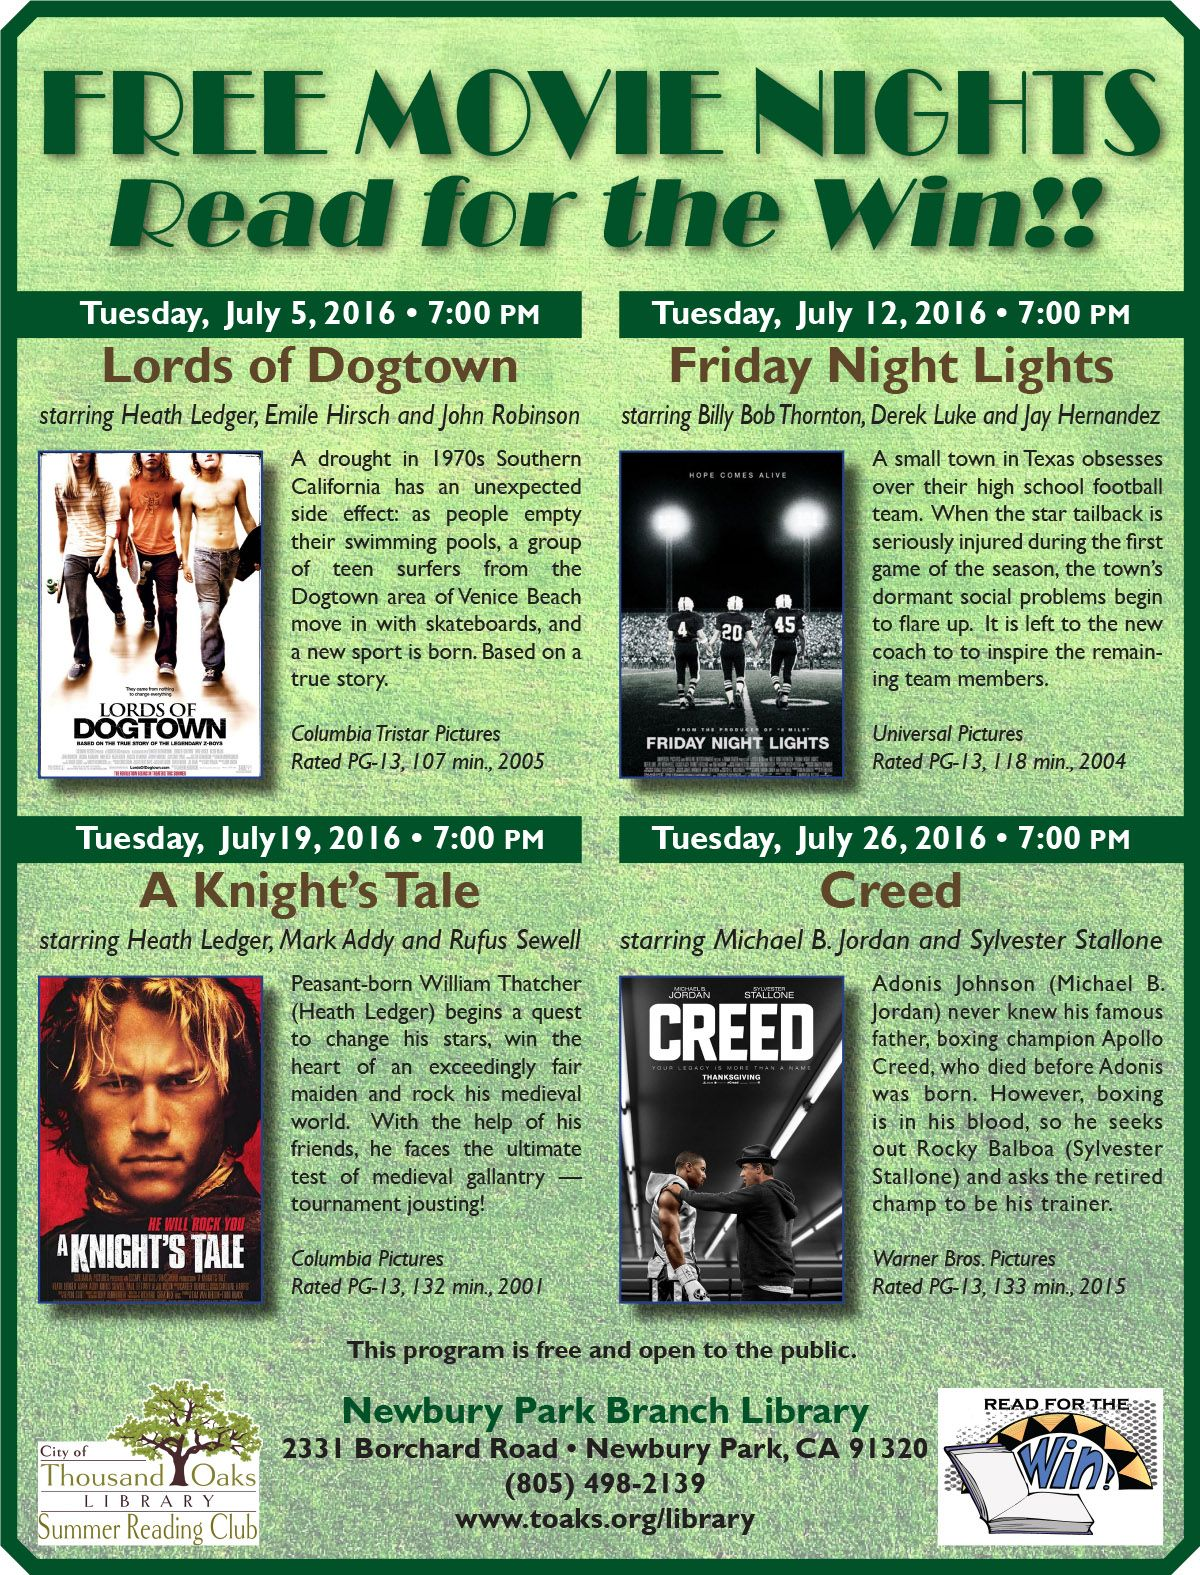 """Free Movie Nights at the Newbury Park Branch Library for July 2016: Tuesday, July 5 at 7pm, """"Lords of Dogtown""""; Tuesday, July 12 at 7pm, """"Friday Night Lights""""; Tuesday, July 19 at 7pm, """"A Knight's Tale""""; and Tuesday, July 26 at 7pm, """"Creed"""". All at the Newbury Park Branch Library, 2331 Borchard Road, Newbury Park, CA."""